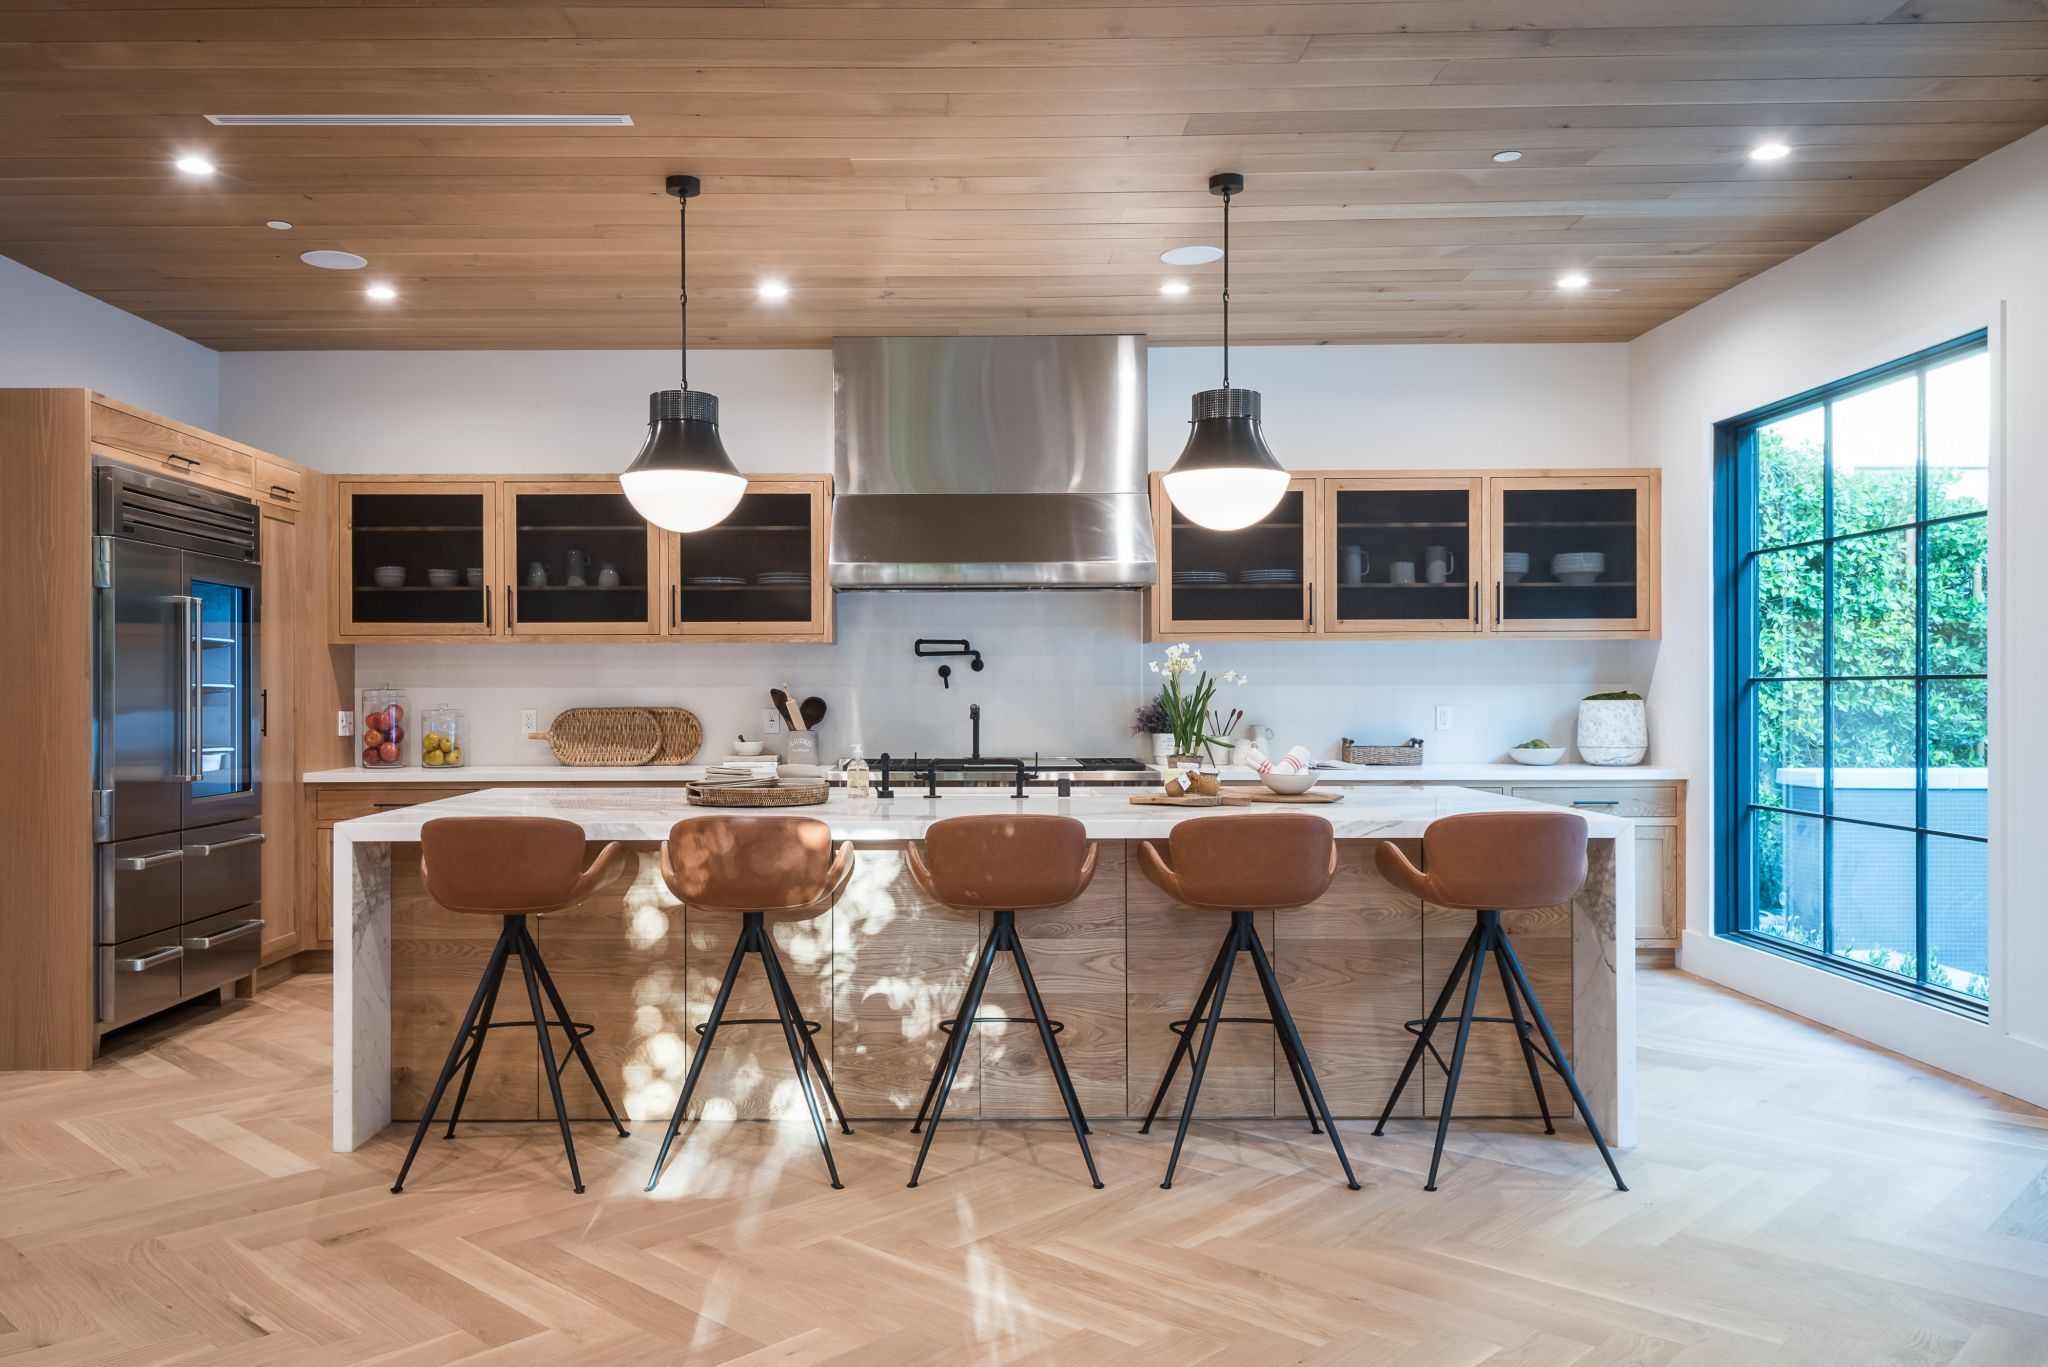 6 ways to fall back in love with your kitchen